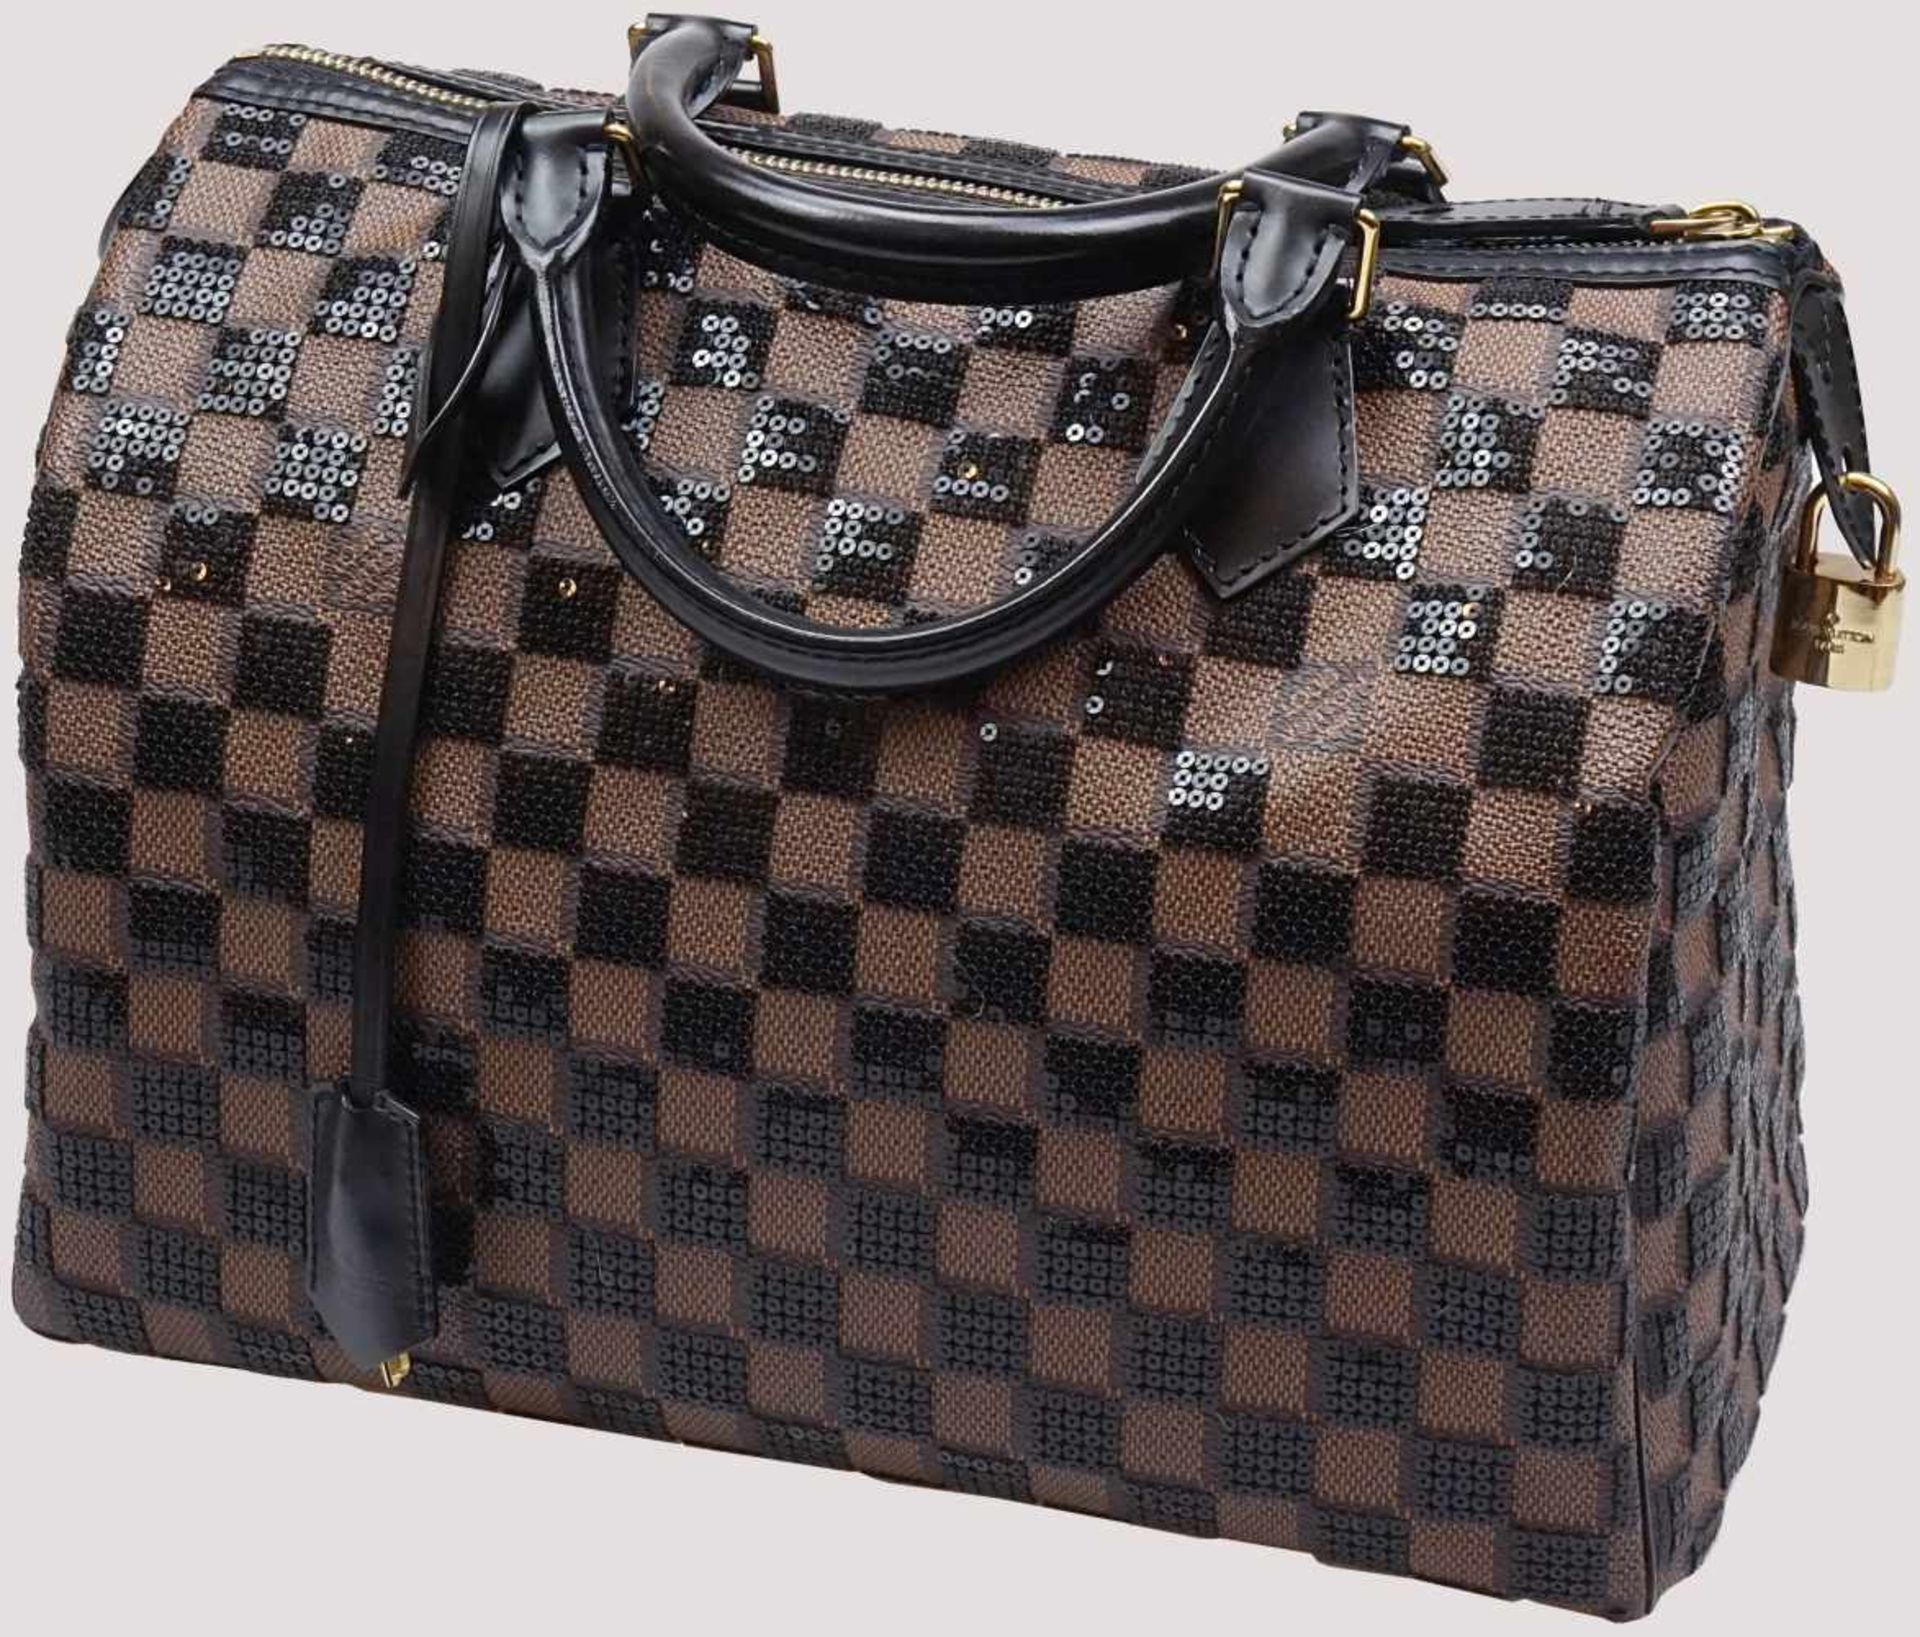 "1 Handtasche LOUIS VUITTON ""Speedy"" - Image 2 of 3"